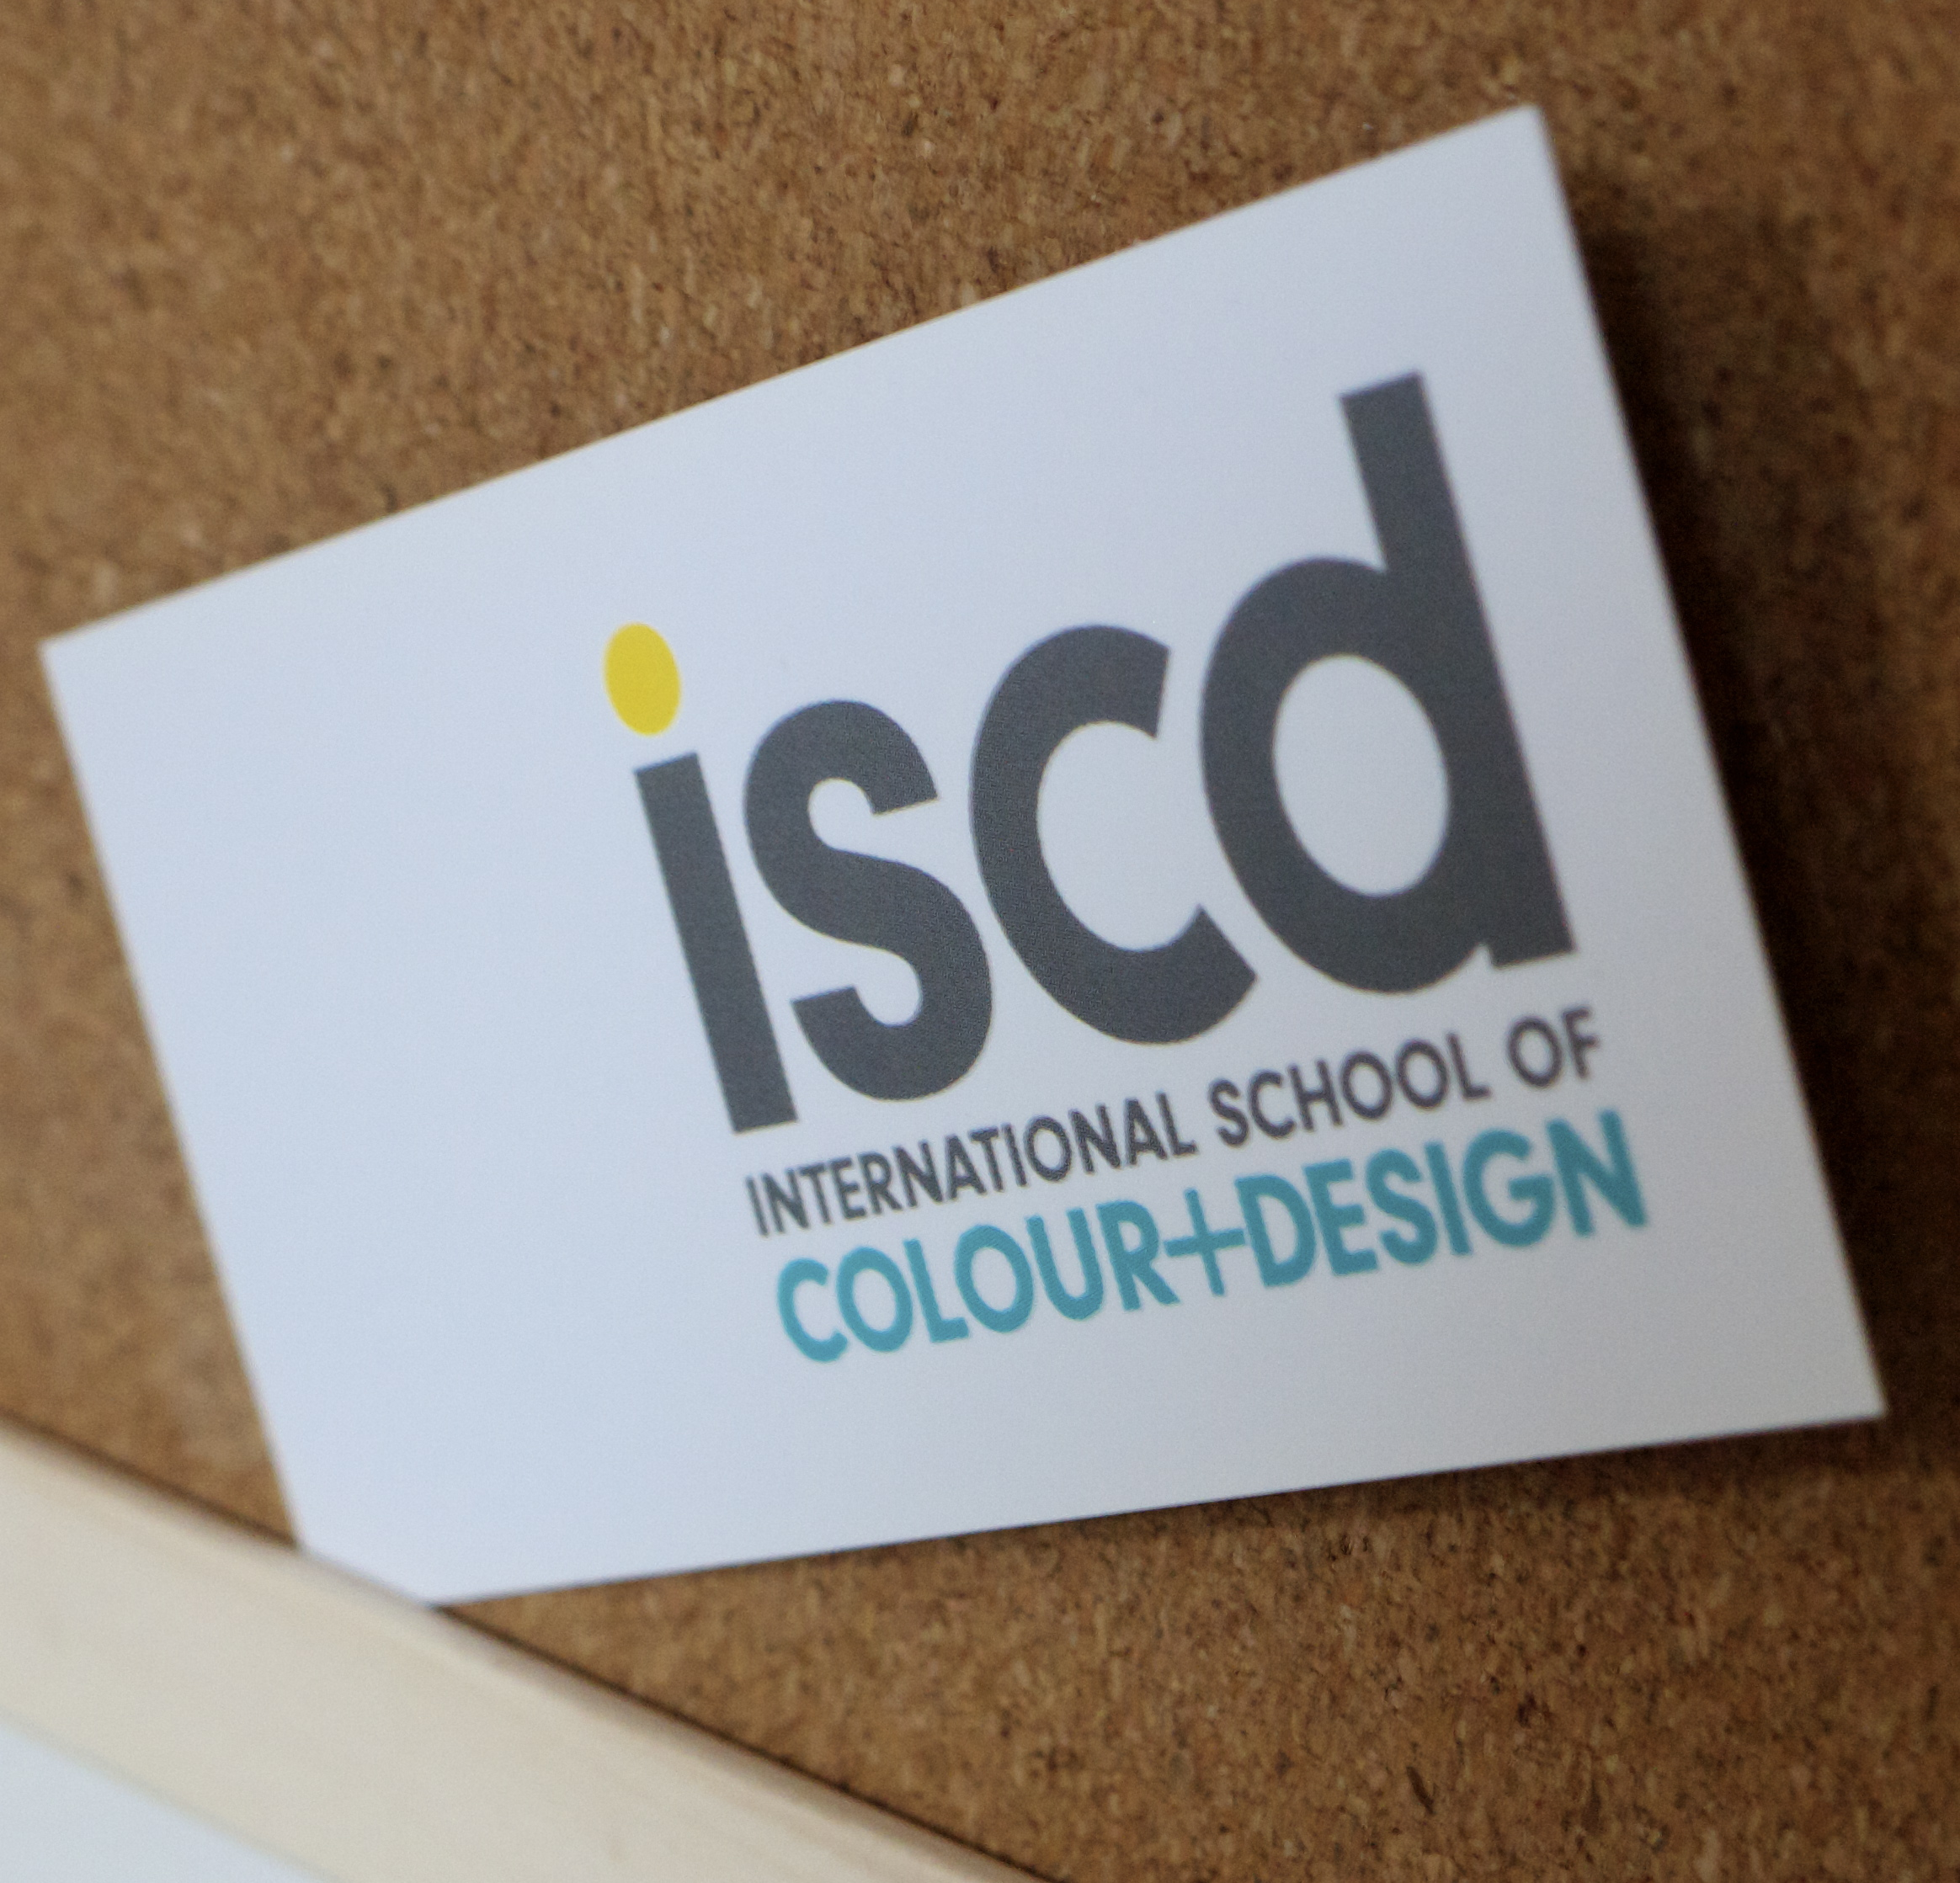 Certificate in Design at ISCD